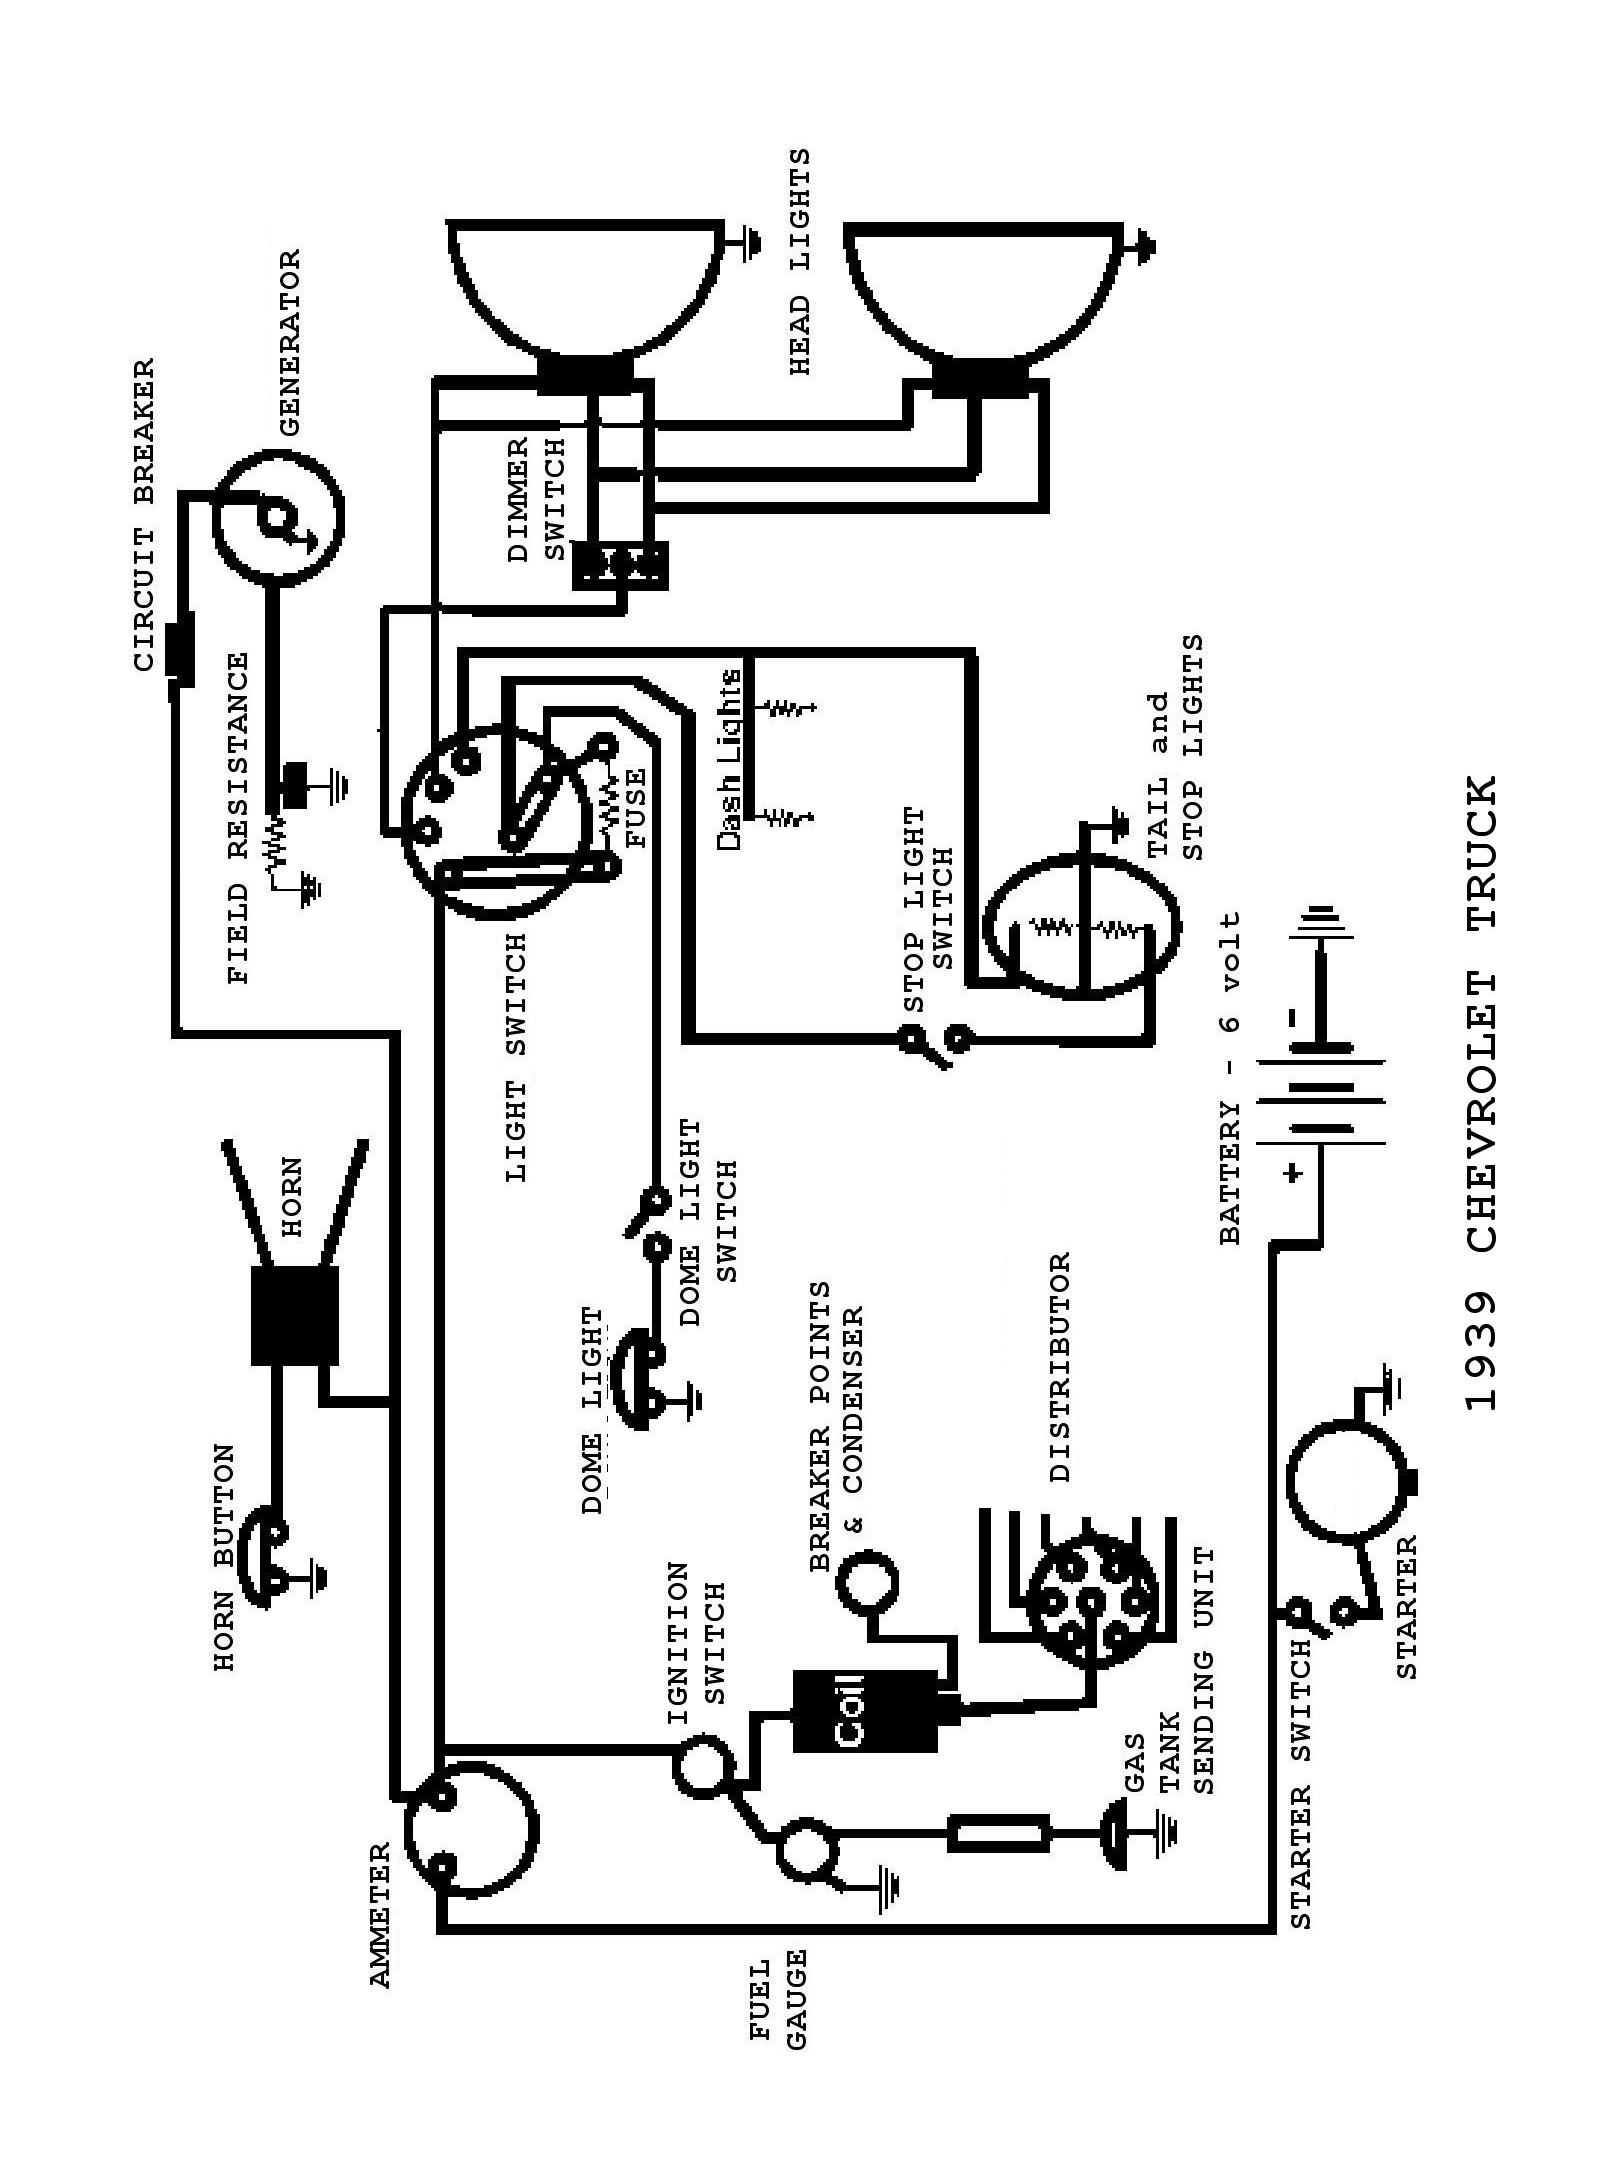 39truck ihc truck wiring diagrams mazda truck wiring diagrams \u2022 free  at honlapkeszites.co